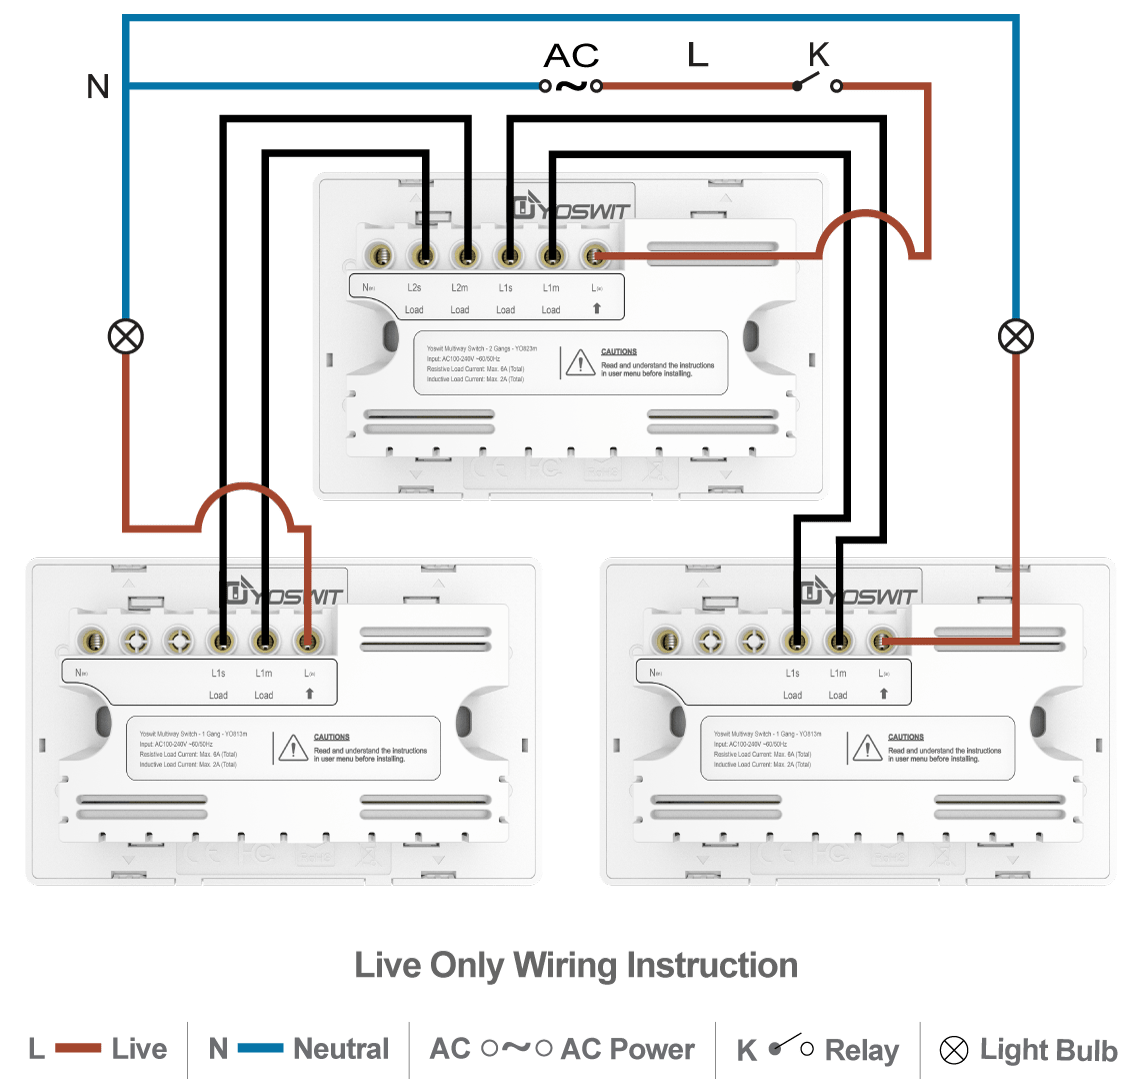 hight resolution of option 4 connect three yoswit 3 way switches 3 wire with neutral wire